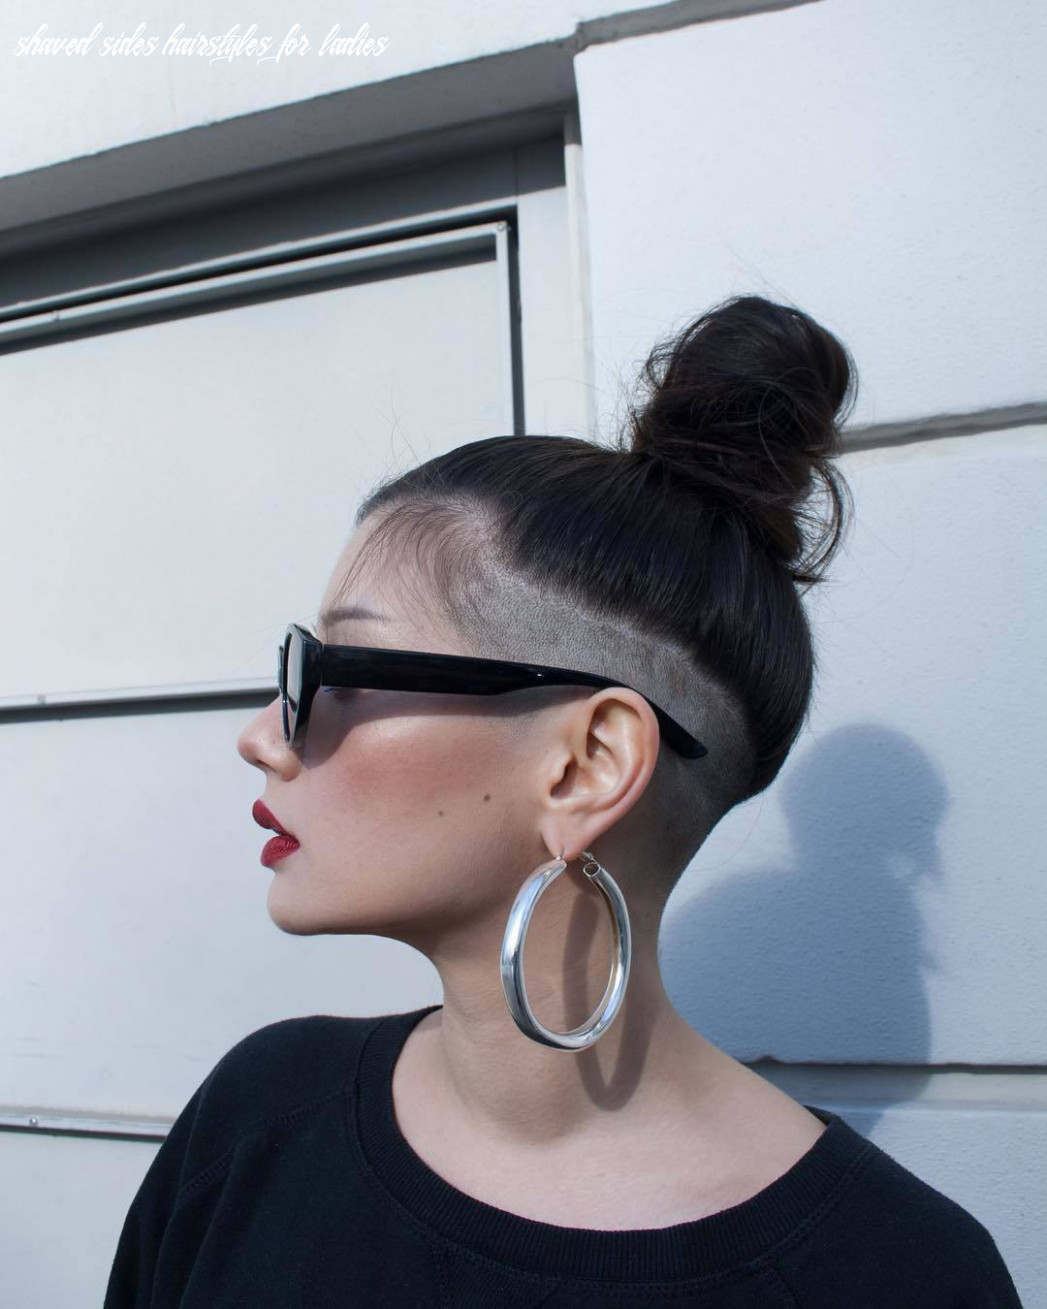 8 bold shaved hairstyles for women | shaved hair designs shaved sides hairstyles for ladies